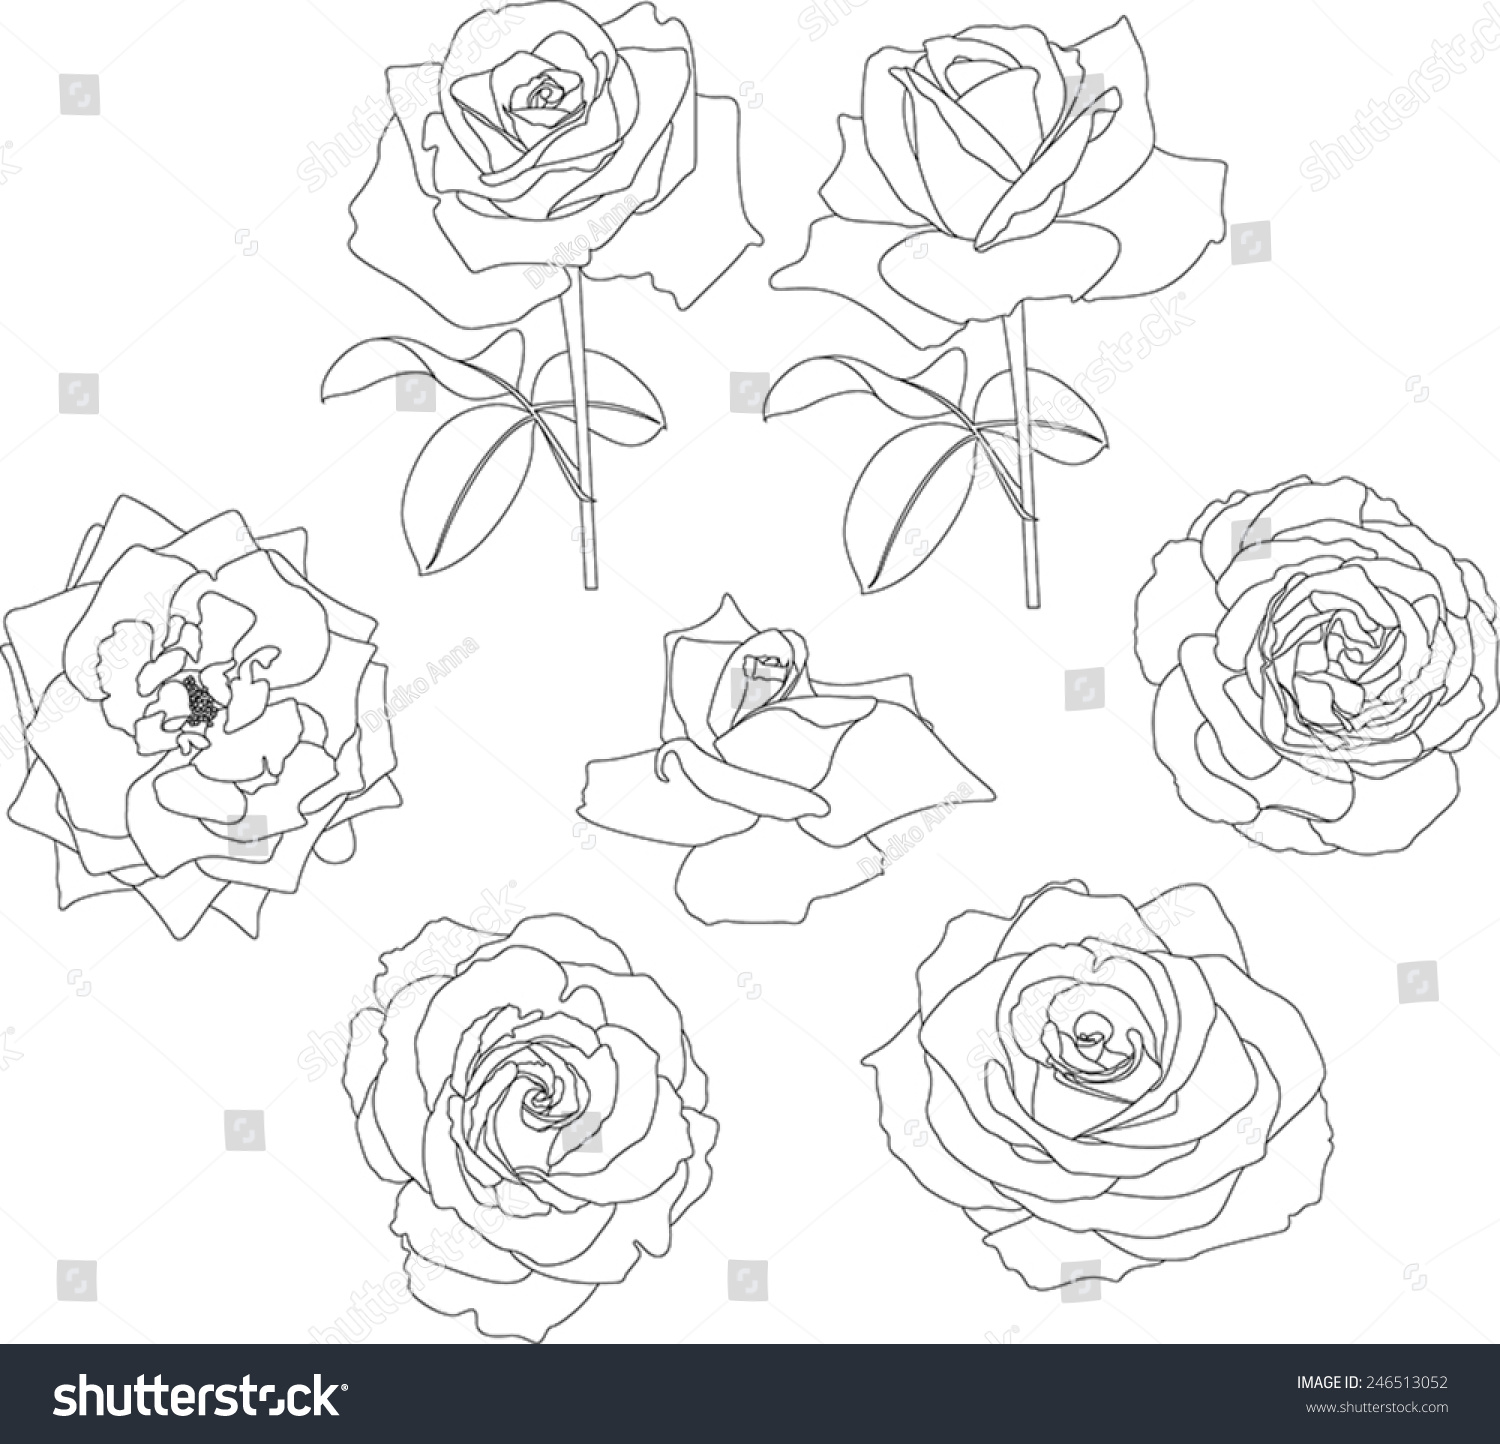 Contour Line Drawing Rose : Roses contour stock vector shutterstock